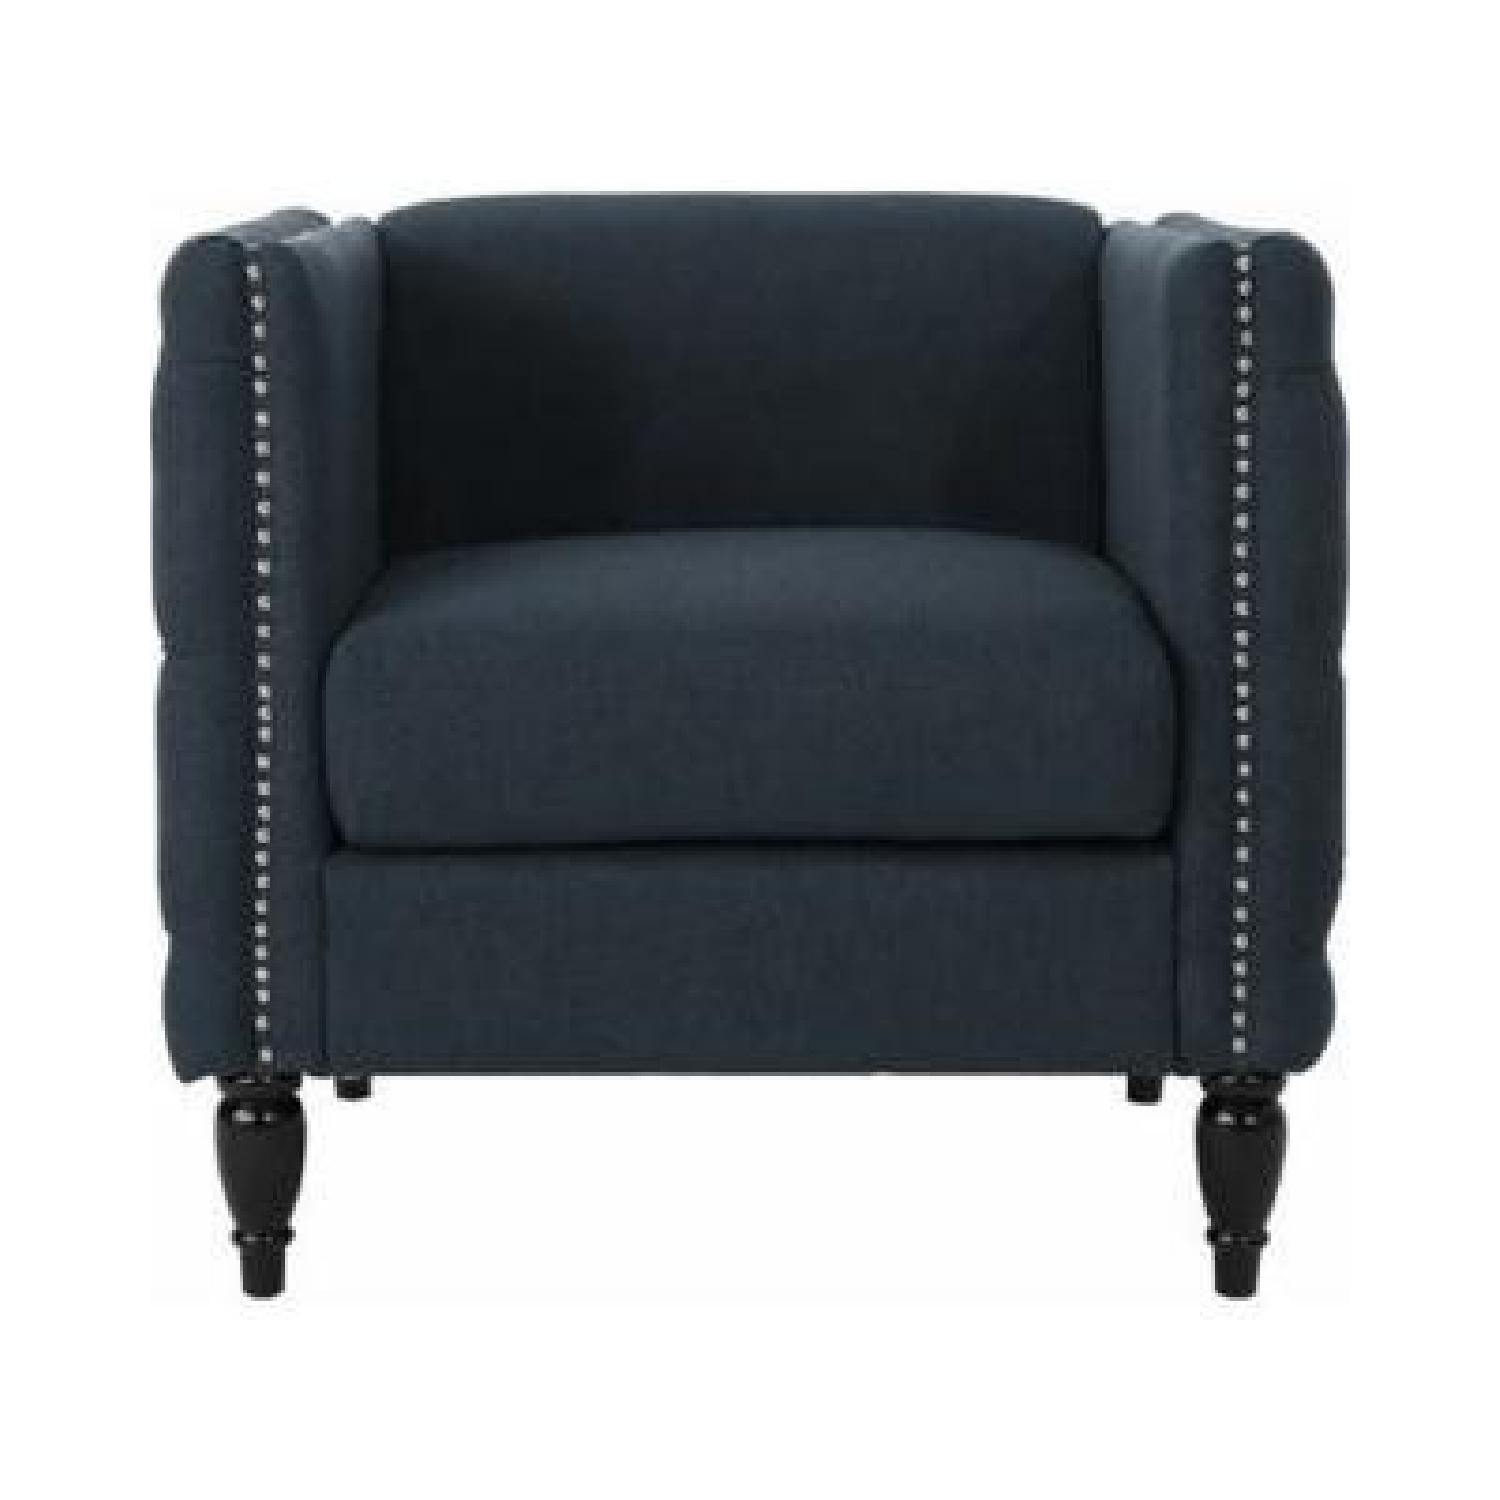 GDF Studio Tufted Gray/Blue Accent Chair